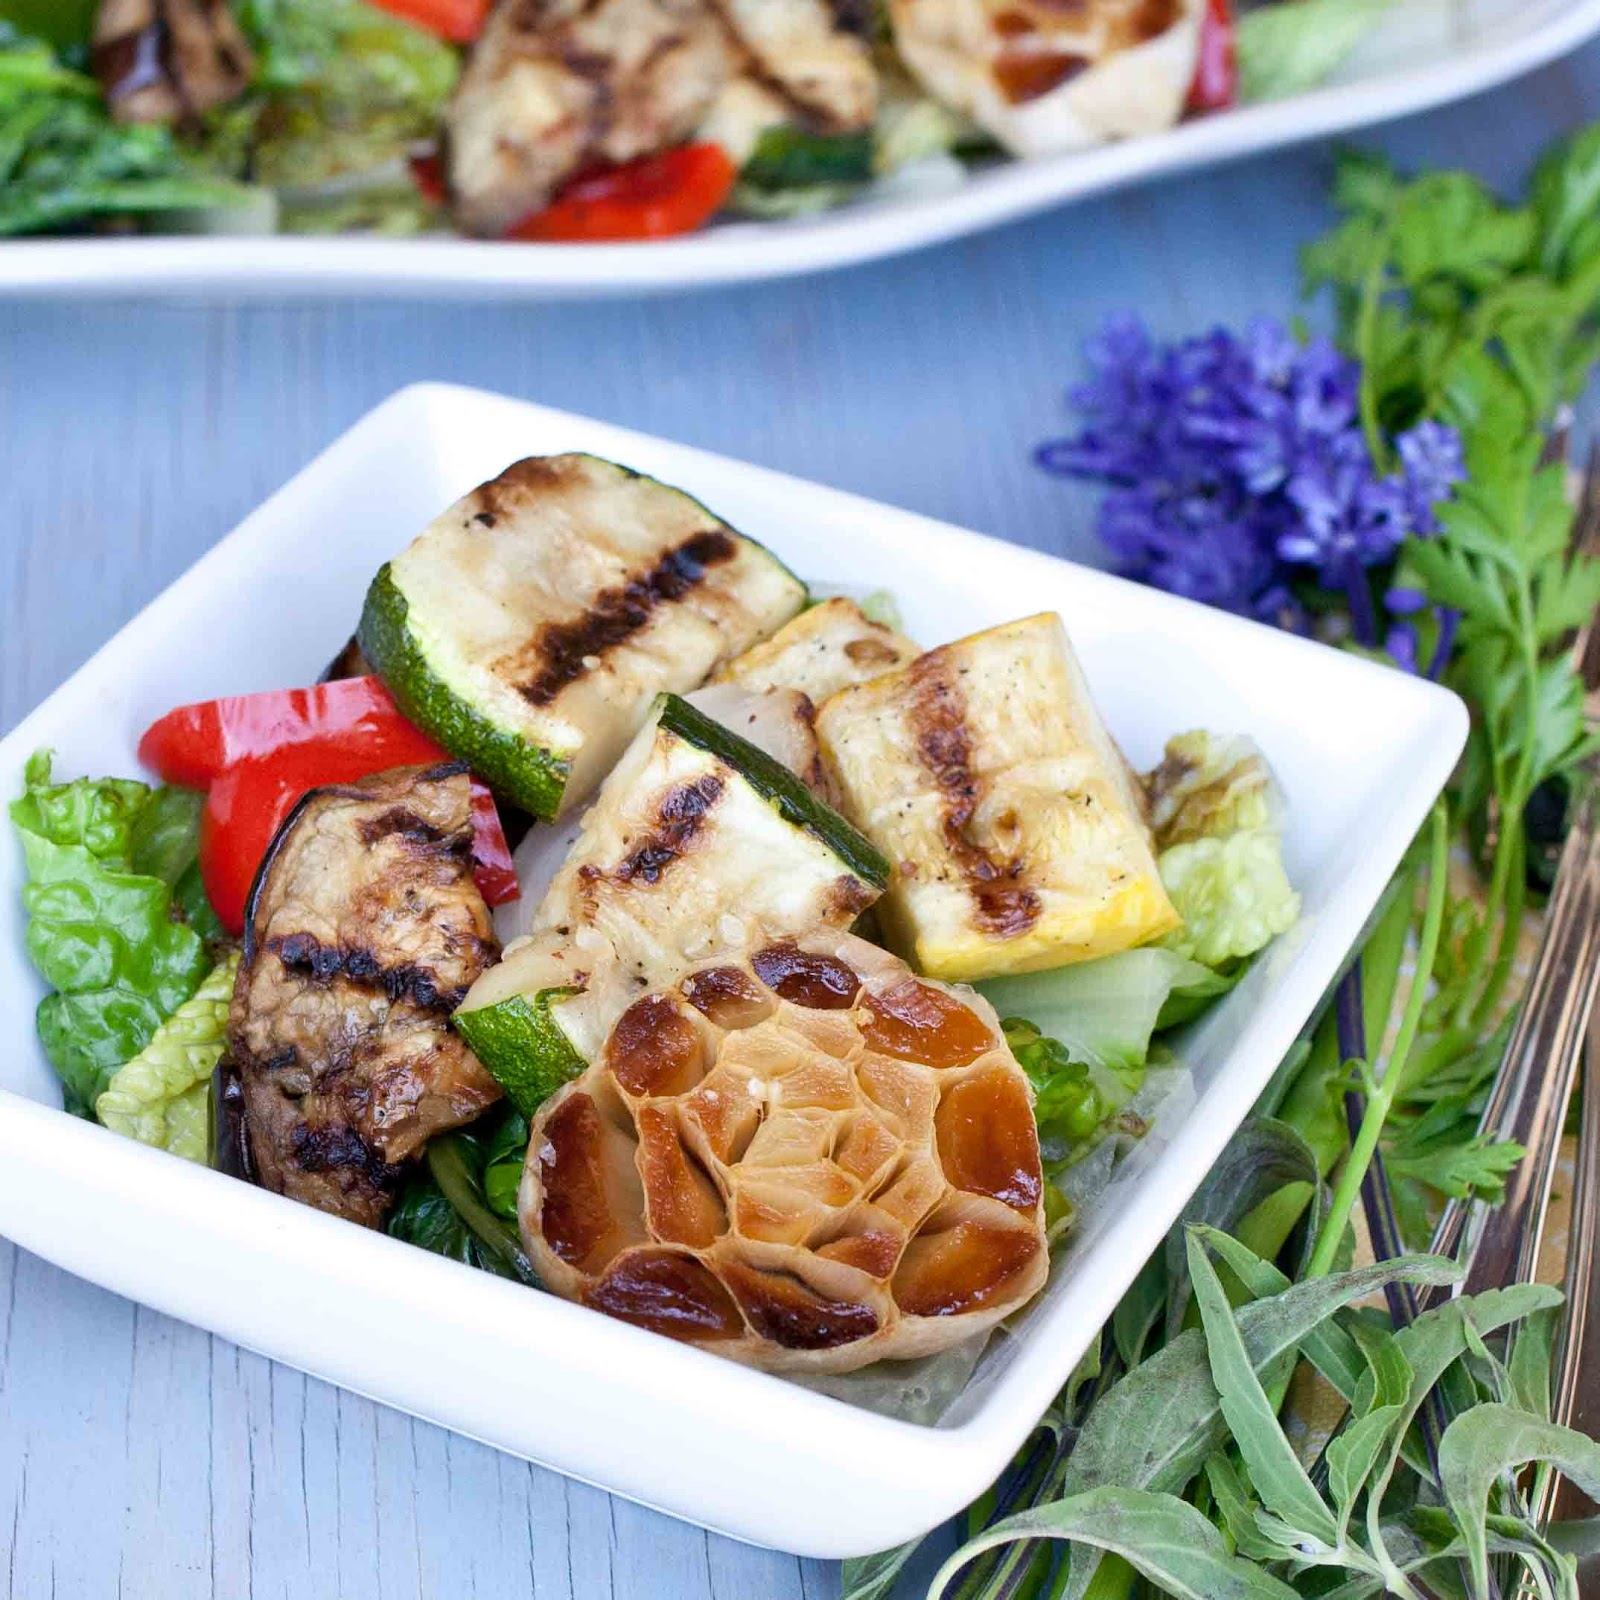 FOODjimoto: Grilled Vegetable Salad